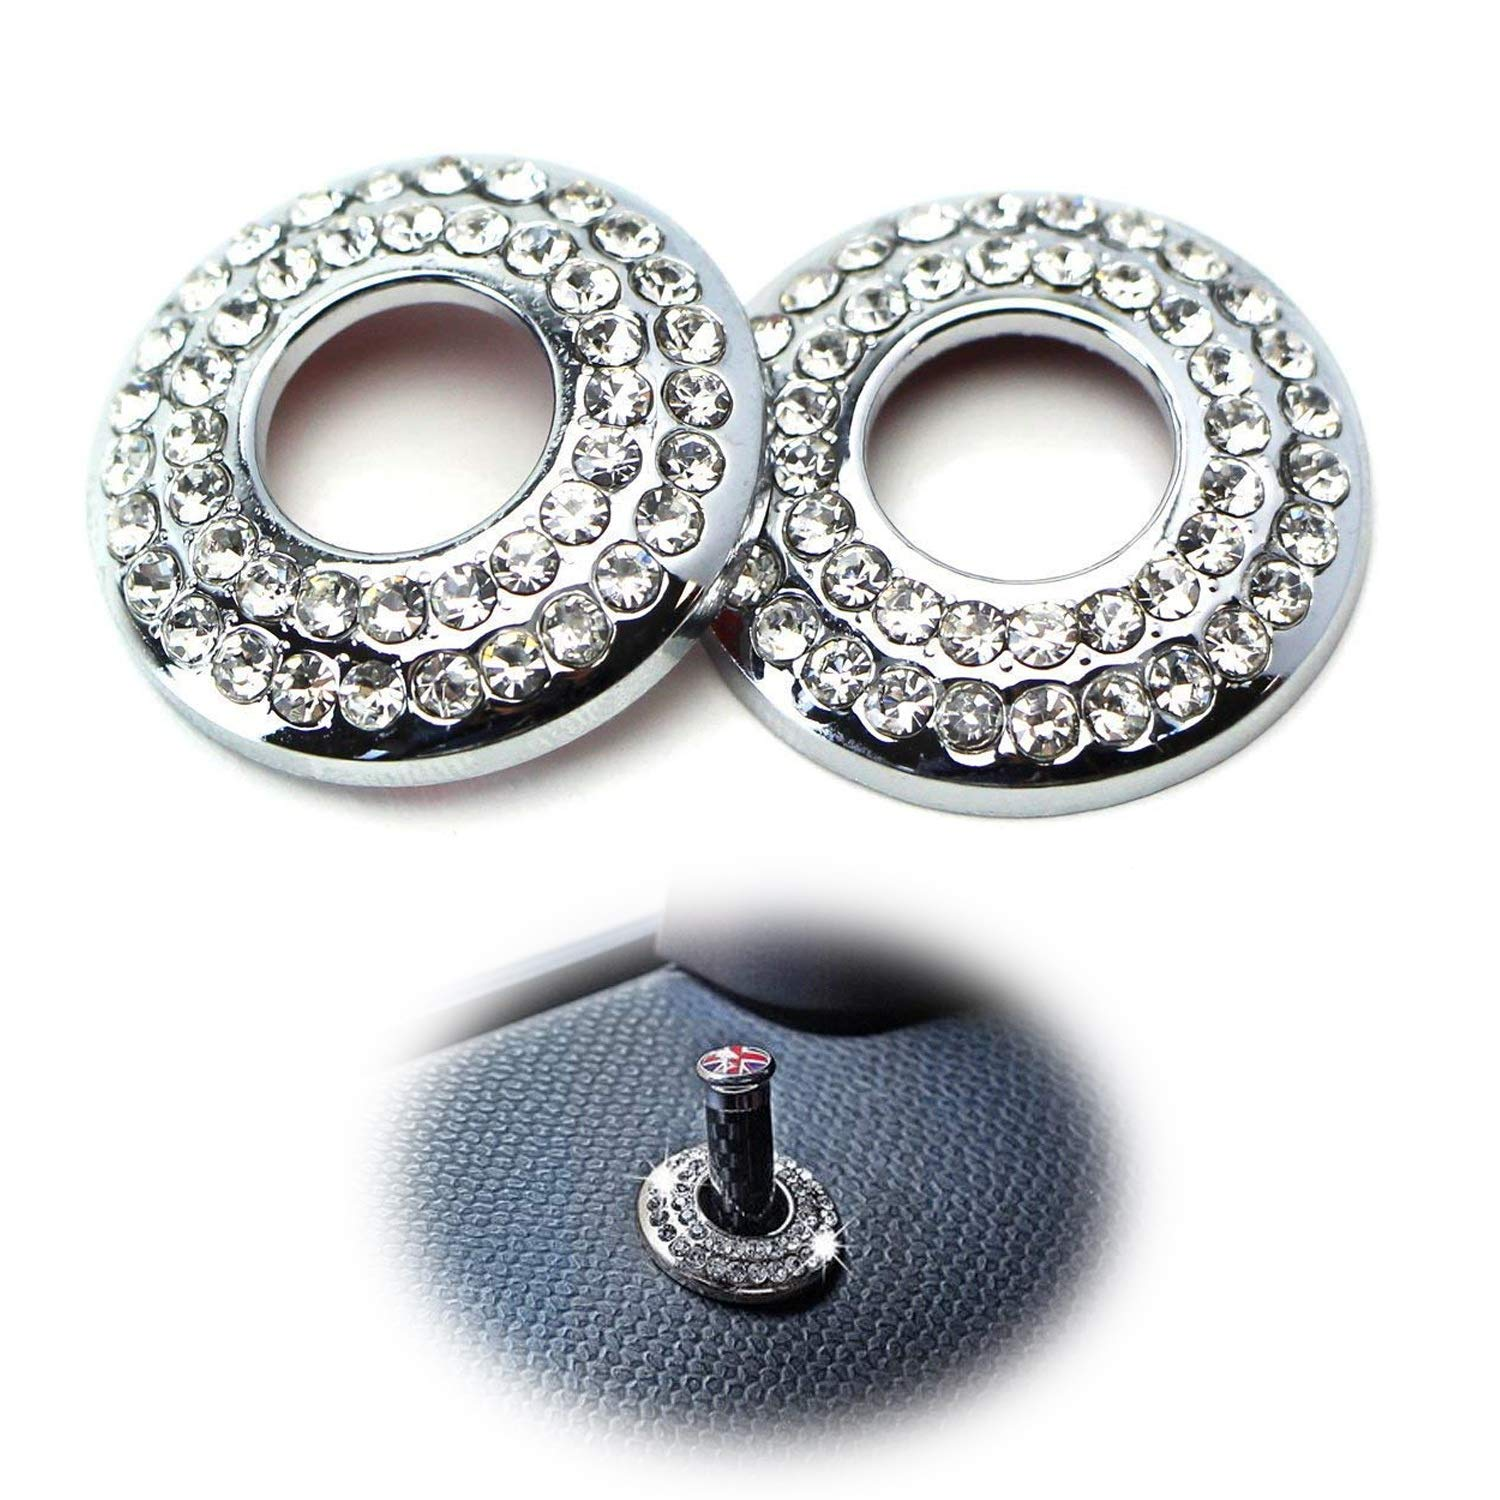 iJDMTOY (2) Bling Crystal Decor Alloy Door Lock Knob Ring Covers For MINI Cooper R55 R56 R57 R58 R59 R60, etc iJDMTOY Auto Accessories Rhinestone door ring lock pin covers